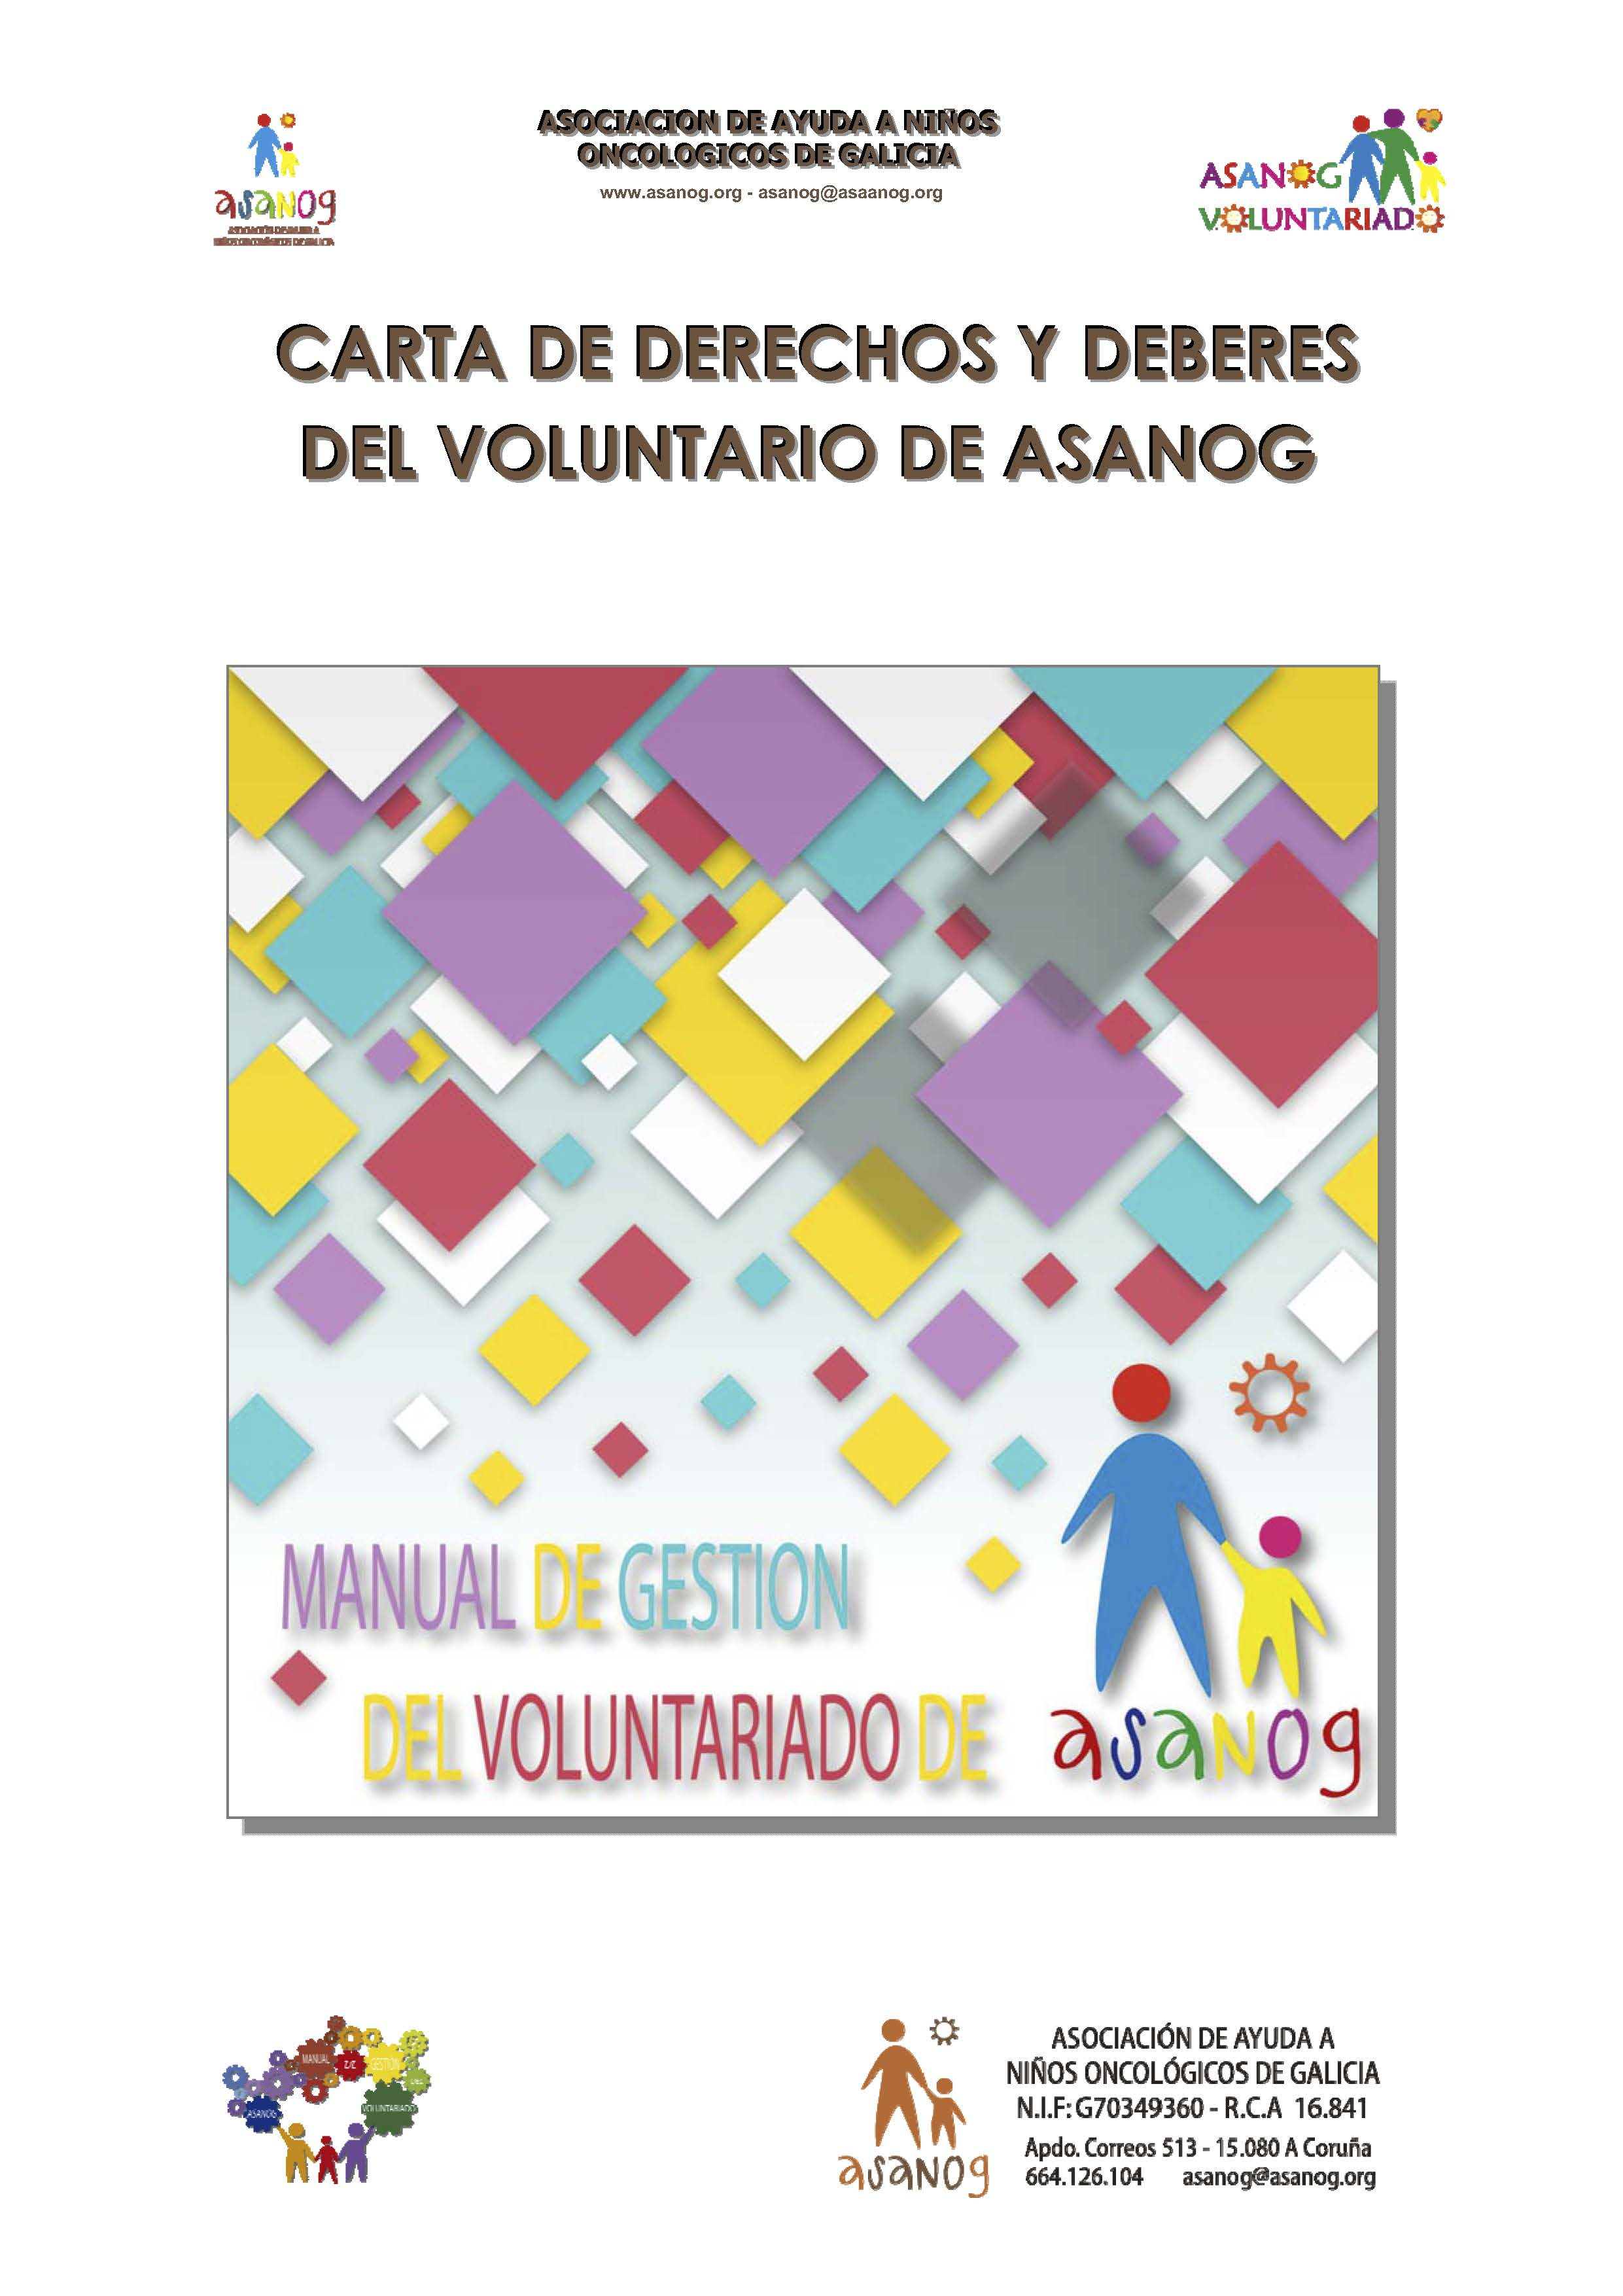 PORTADA MANUAL GESTION VOLUNTARIADO ASANOG CARTA